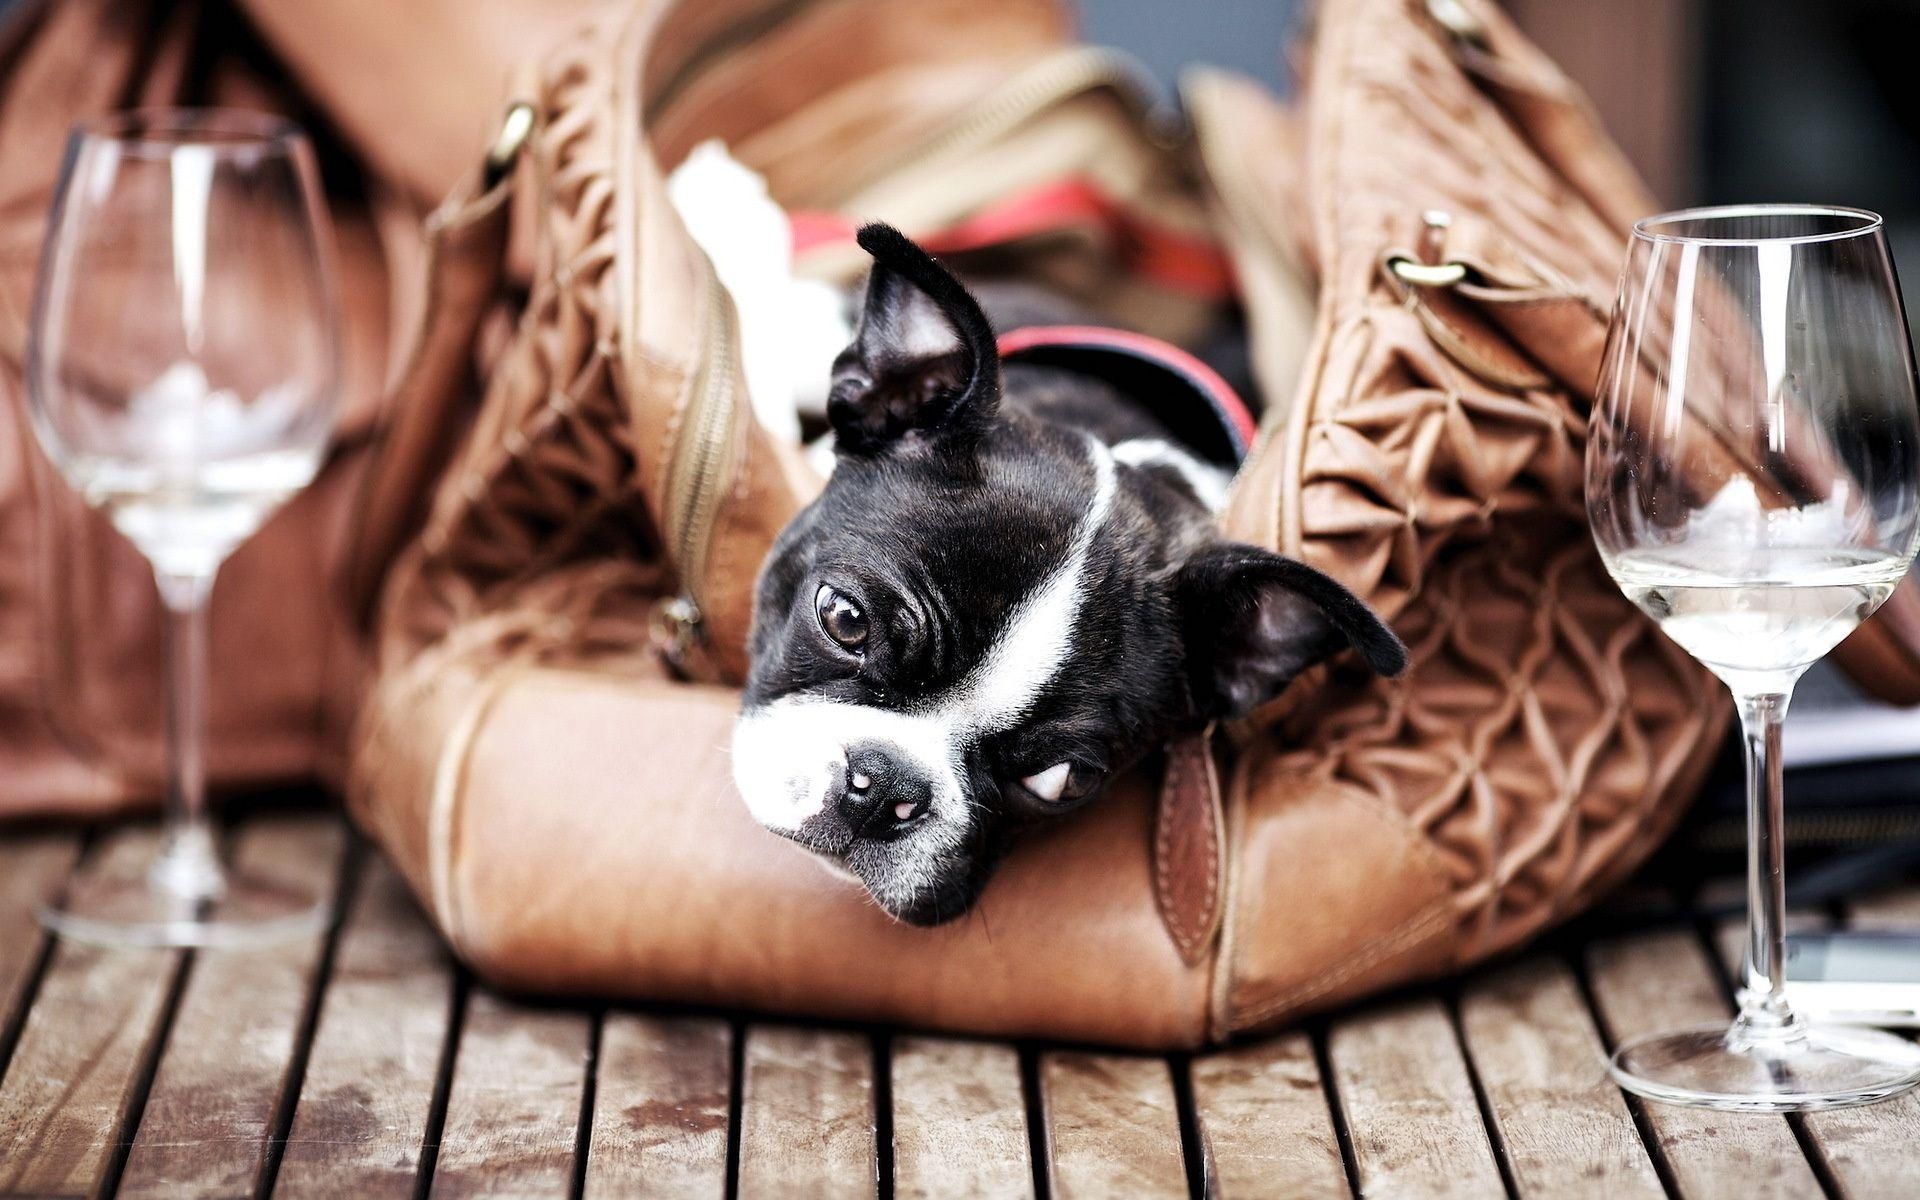 Wallpapers boston terrier, dog, glass, bag, floor desktop wallpapers